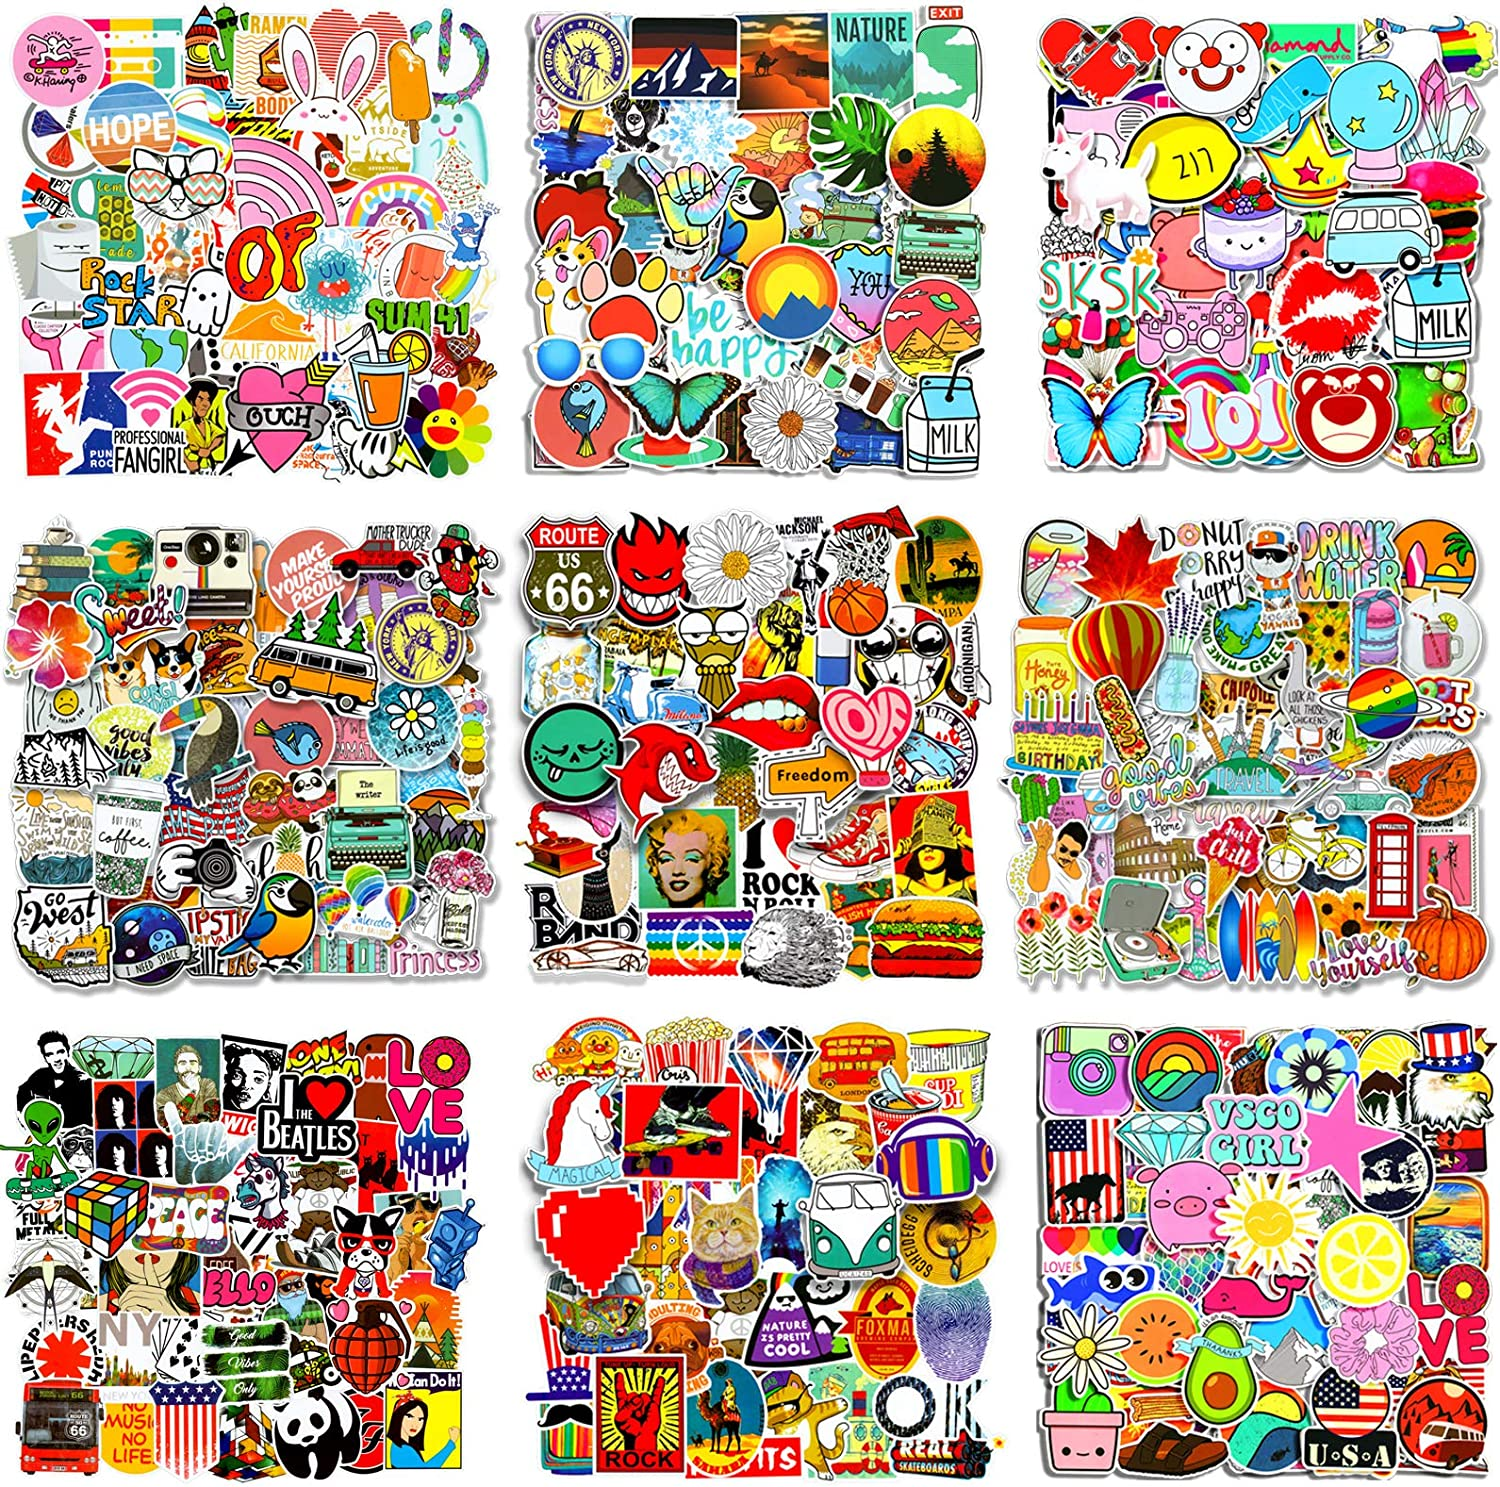 500Pcs Random Stickers Cool Graffiti Decals Sticker Pack,Durable Vinyl Stickers for Flask, Laptop,Water Bottles,Skateboard,Luggage,Bicycle